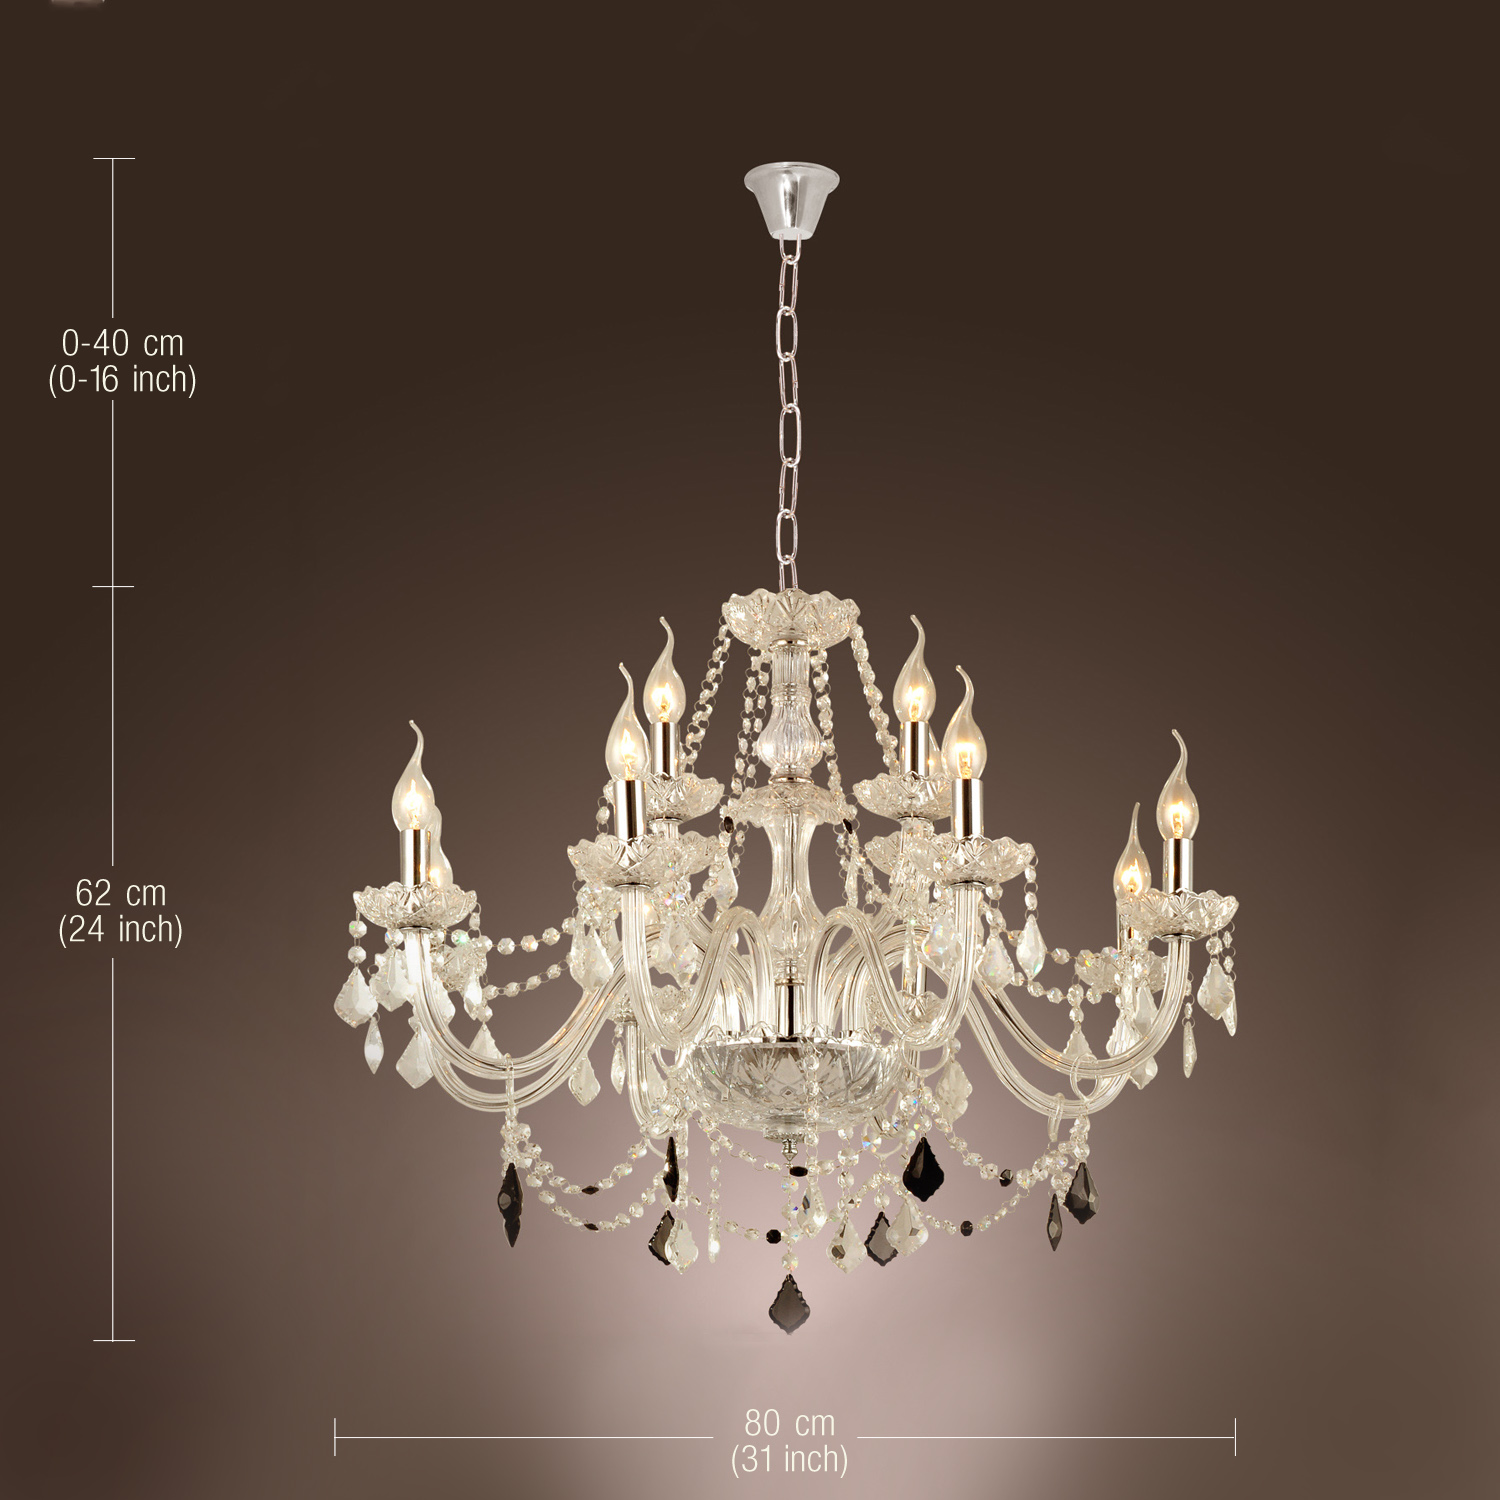 12 light venetian murano style crystal chandelier kitchen foyer dining room usa - Crystal chandelier for dining room ...